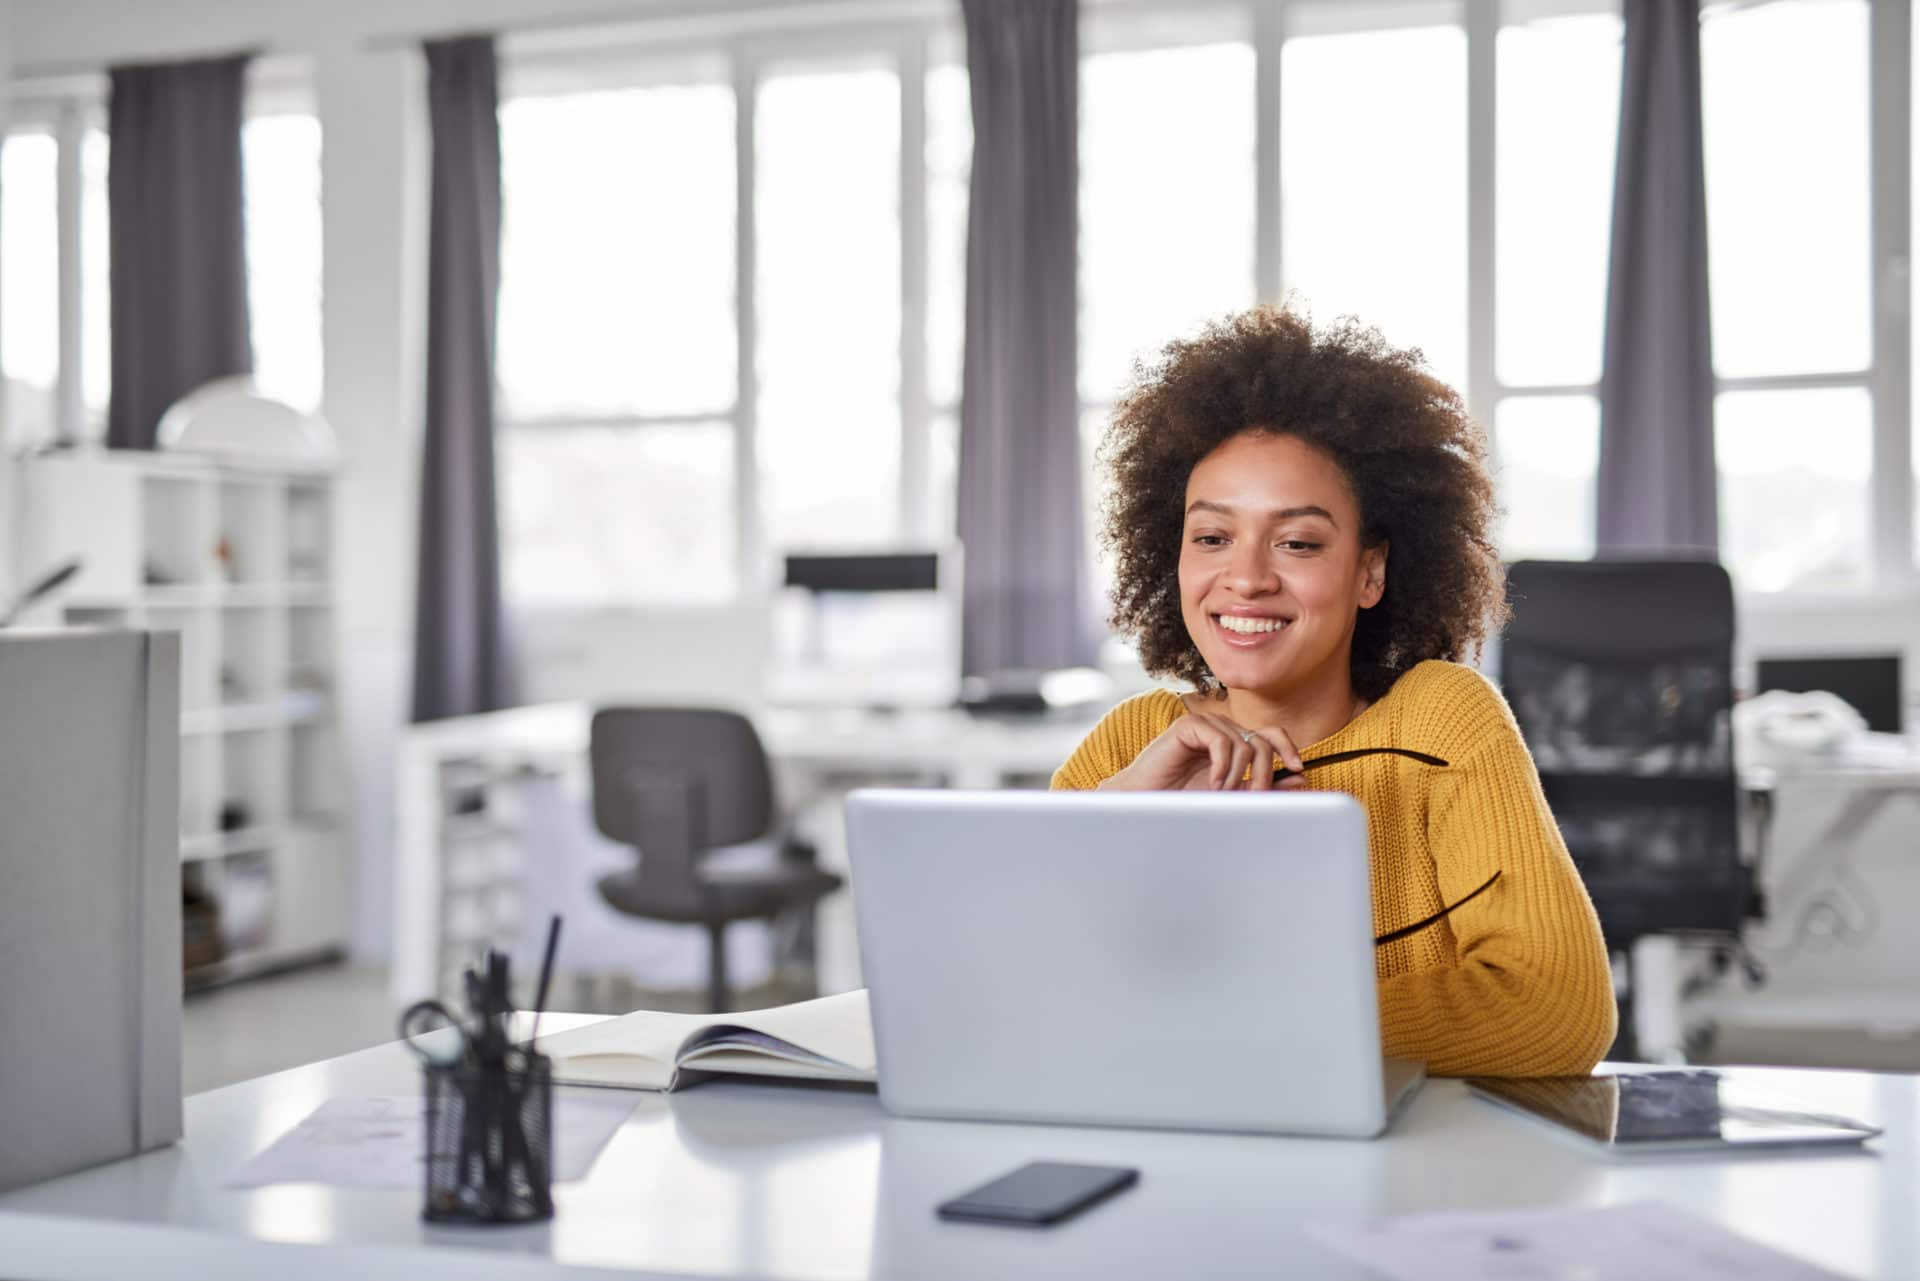 Businesswoman Increasing Productivity With Microsoft Teams